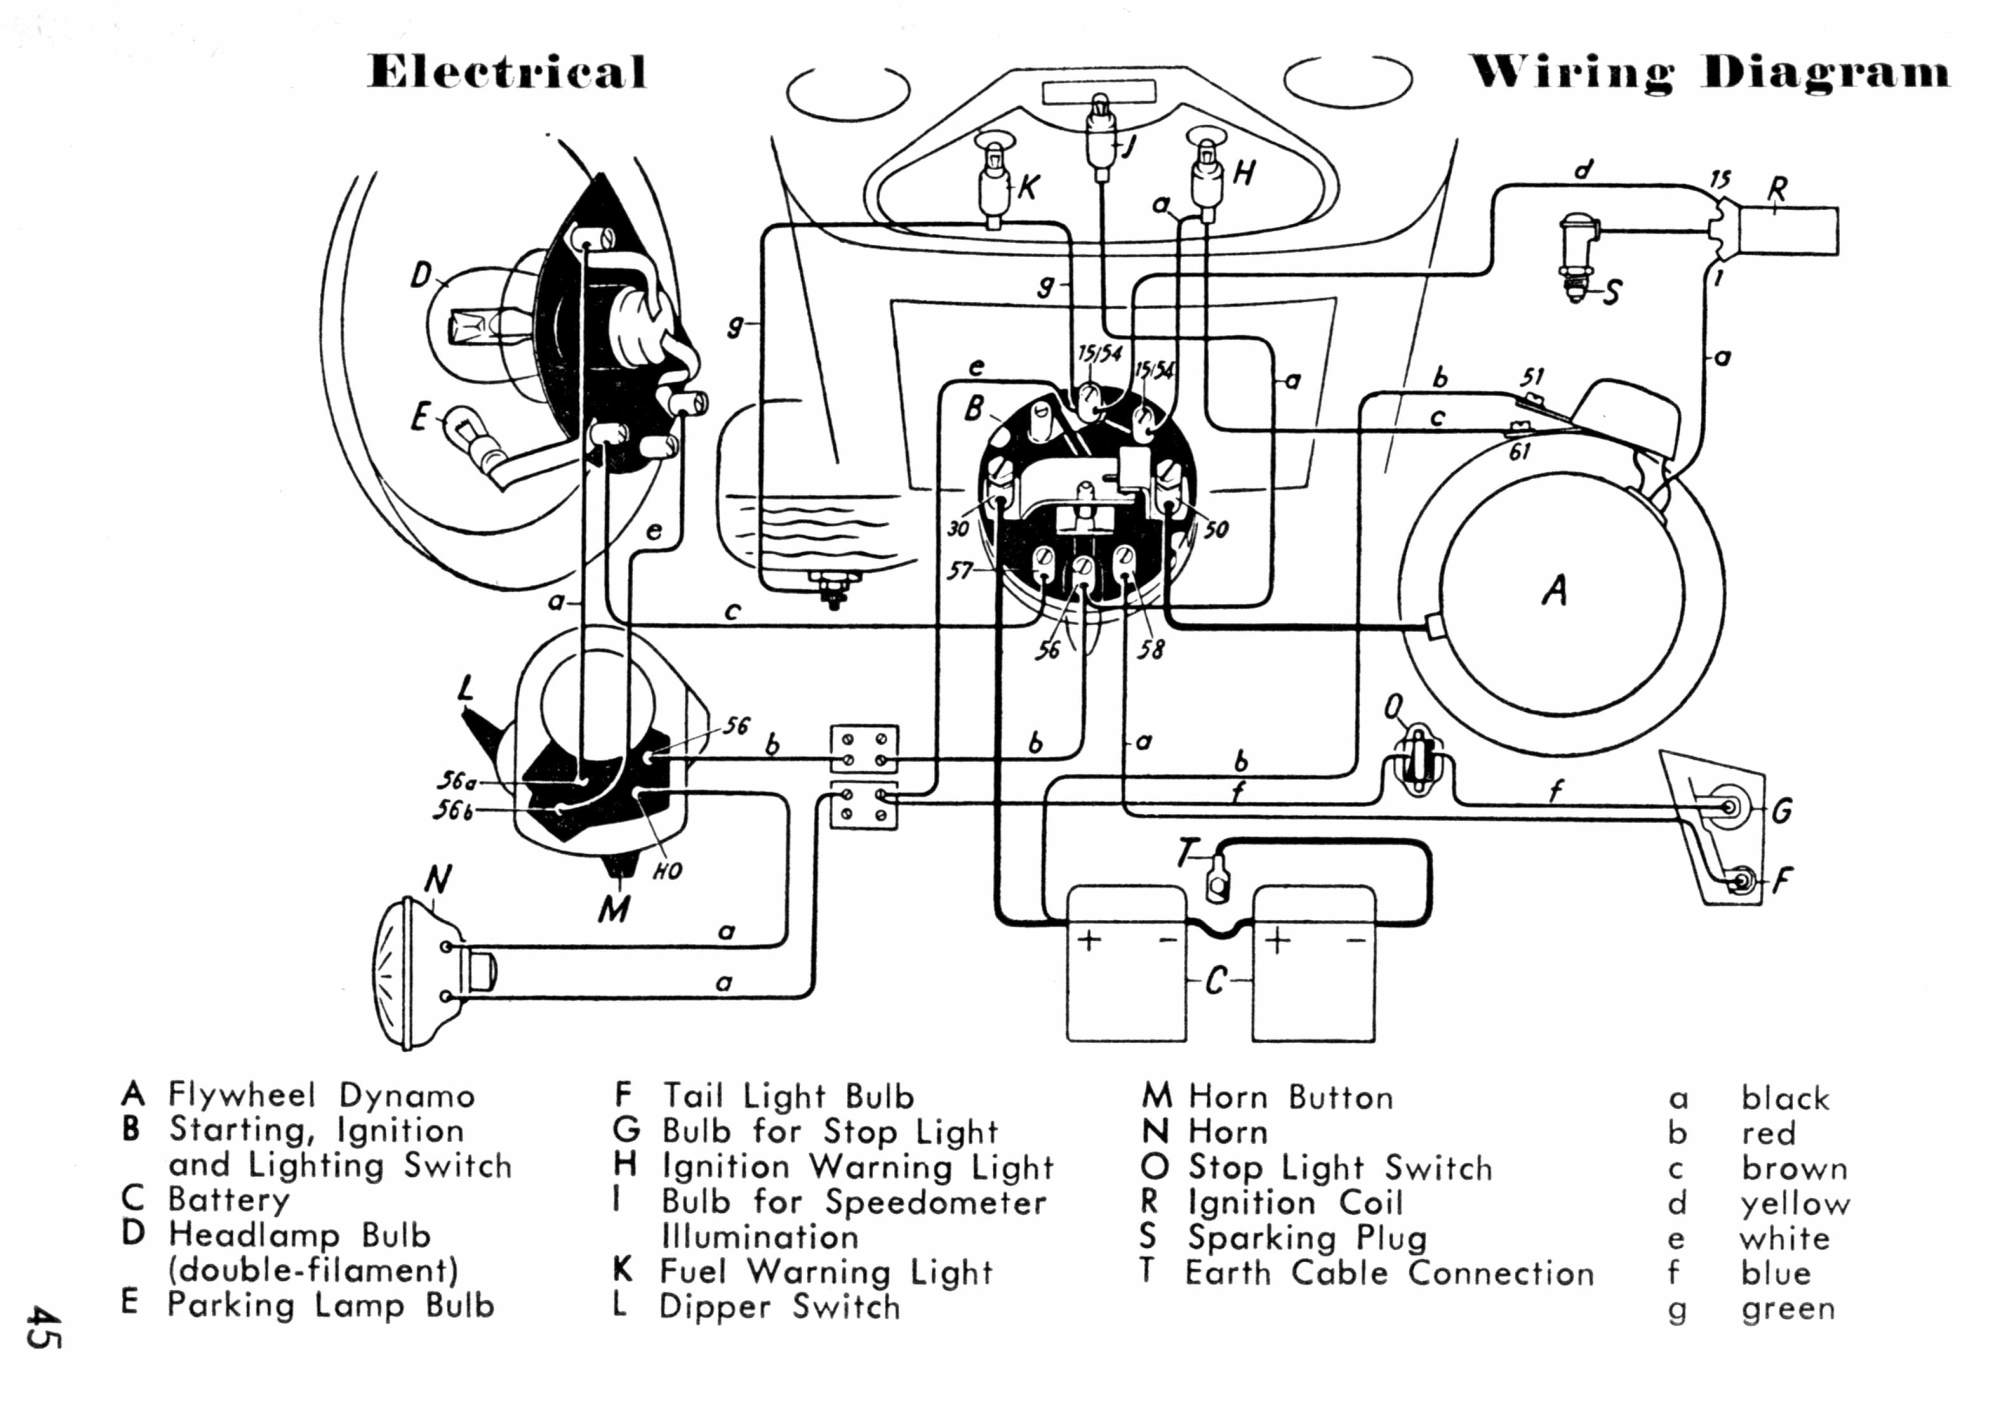 hight resolution of diagram eh wiring clarion v all about repair and wiring diagram eh wiring clarion v yy150t